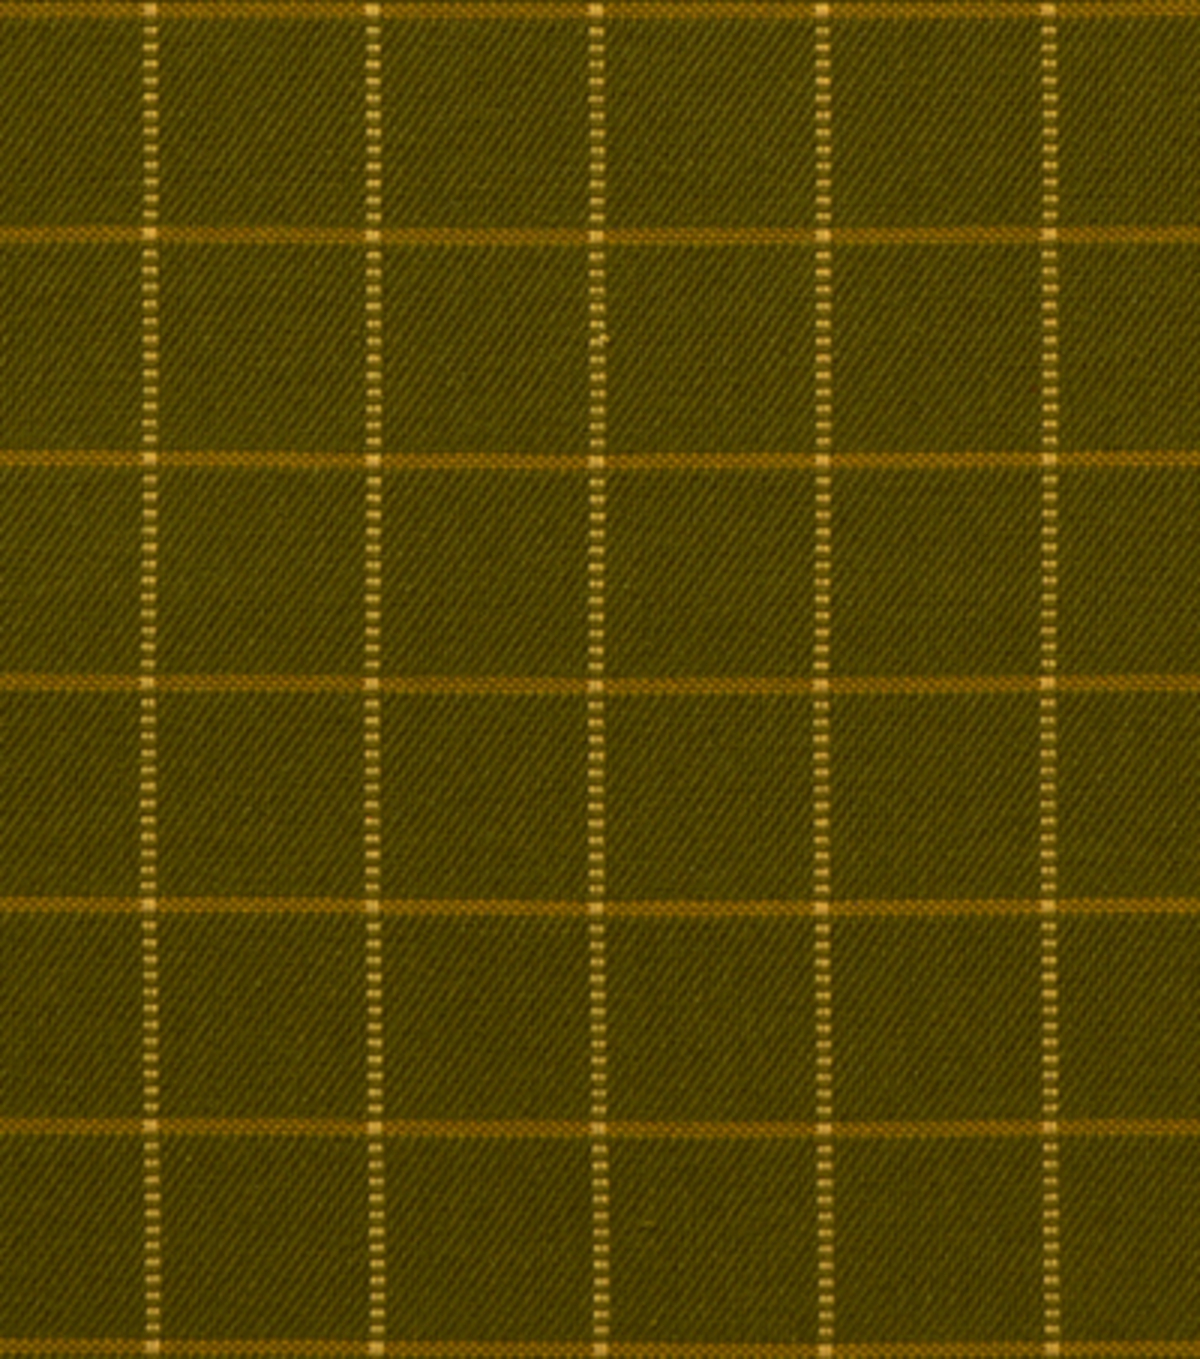 Home Decor 8\u0022x8\u0022 Fabric Swatch-Covington Ansible 290 Loden